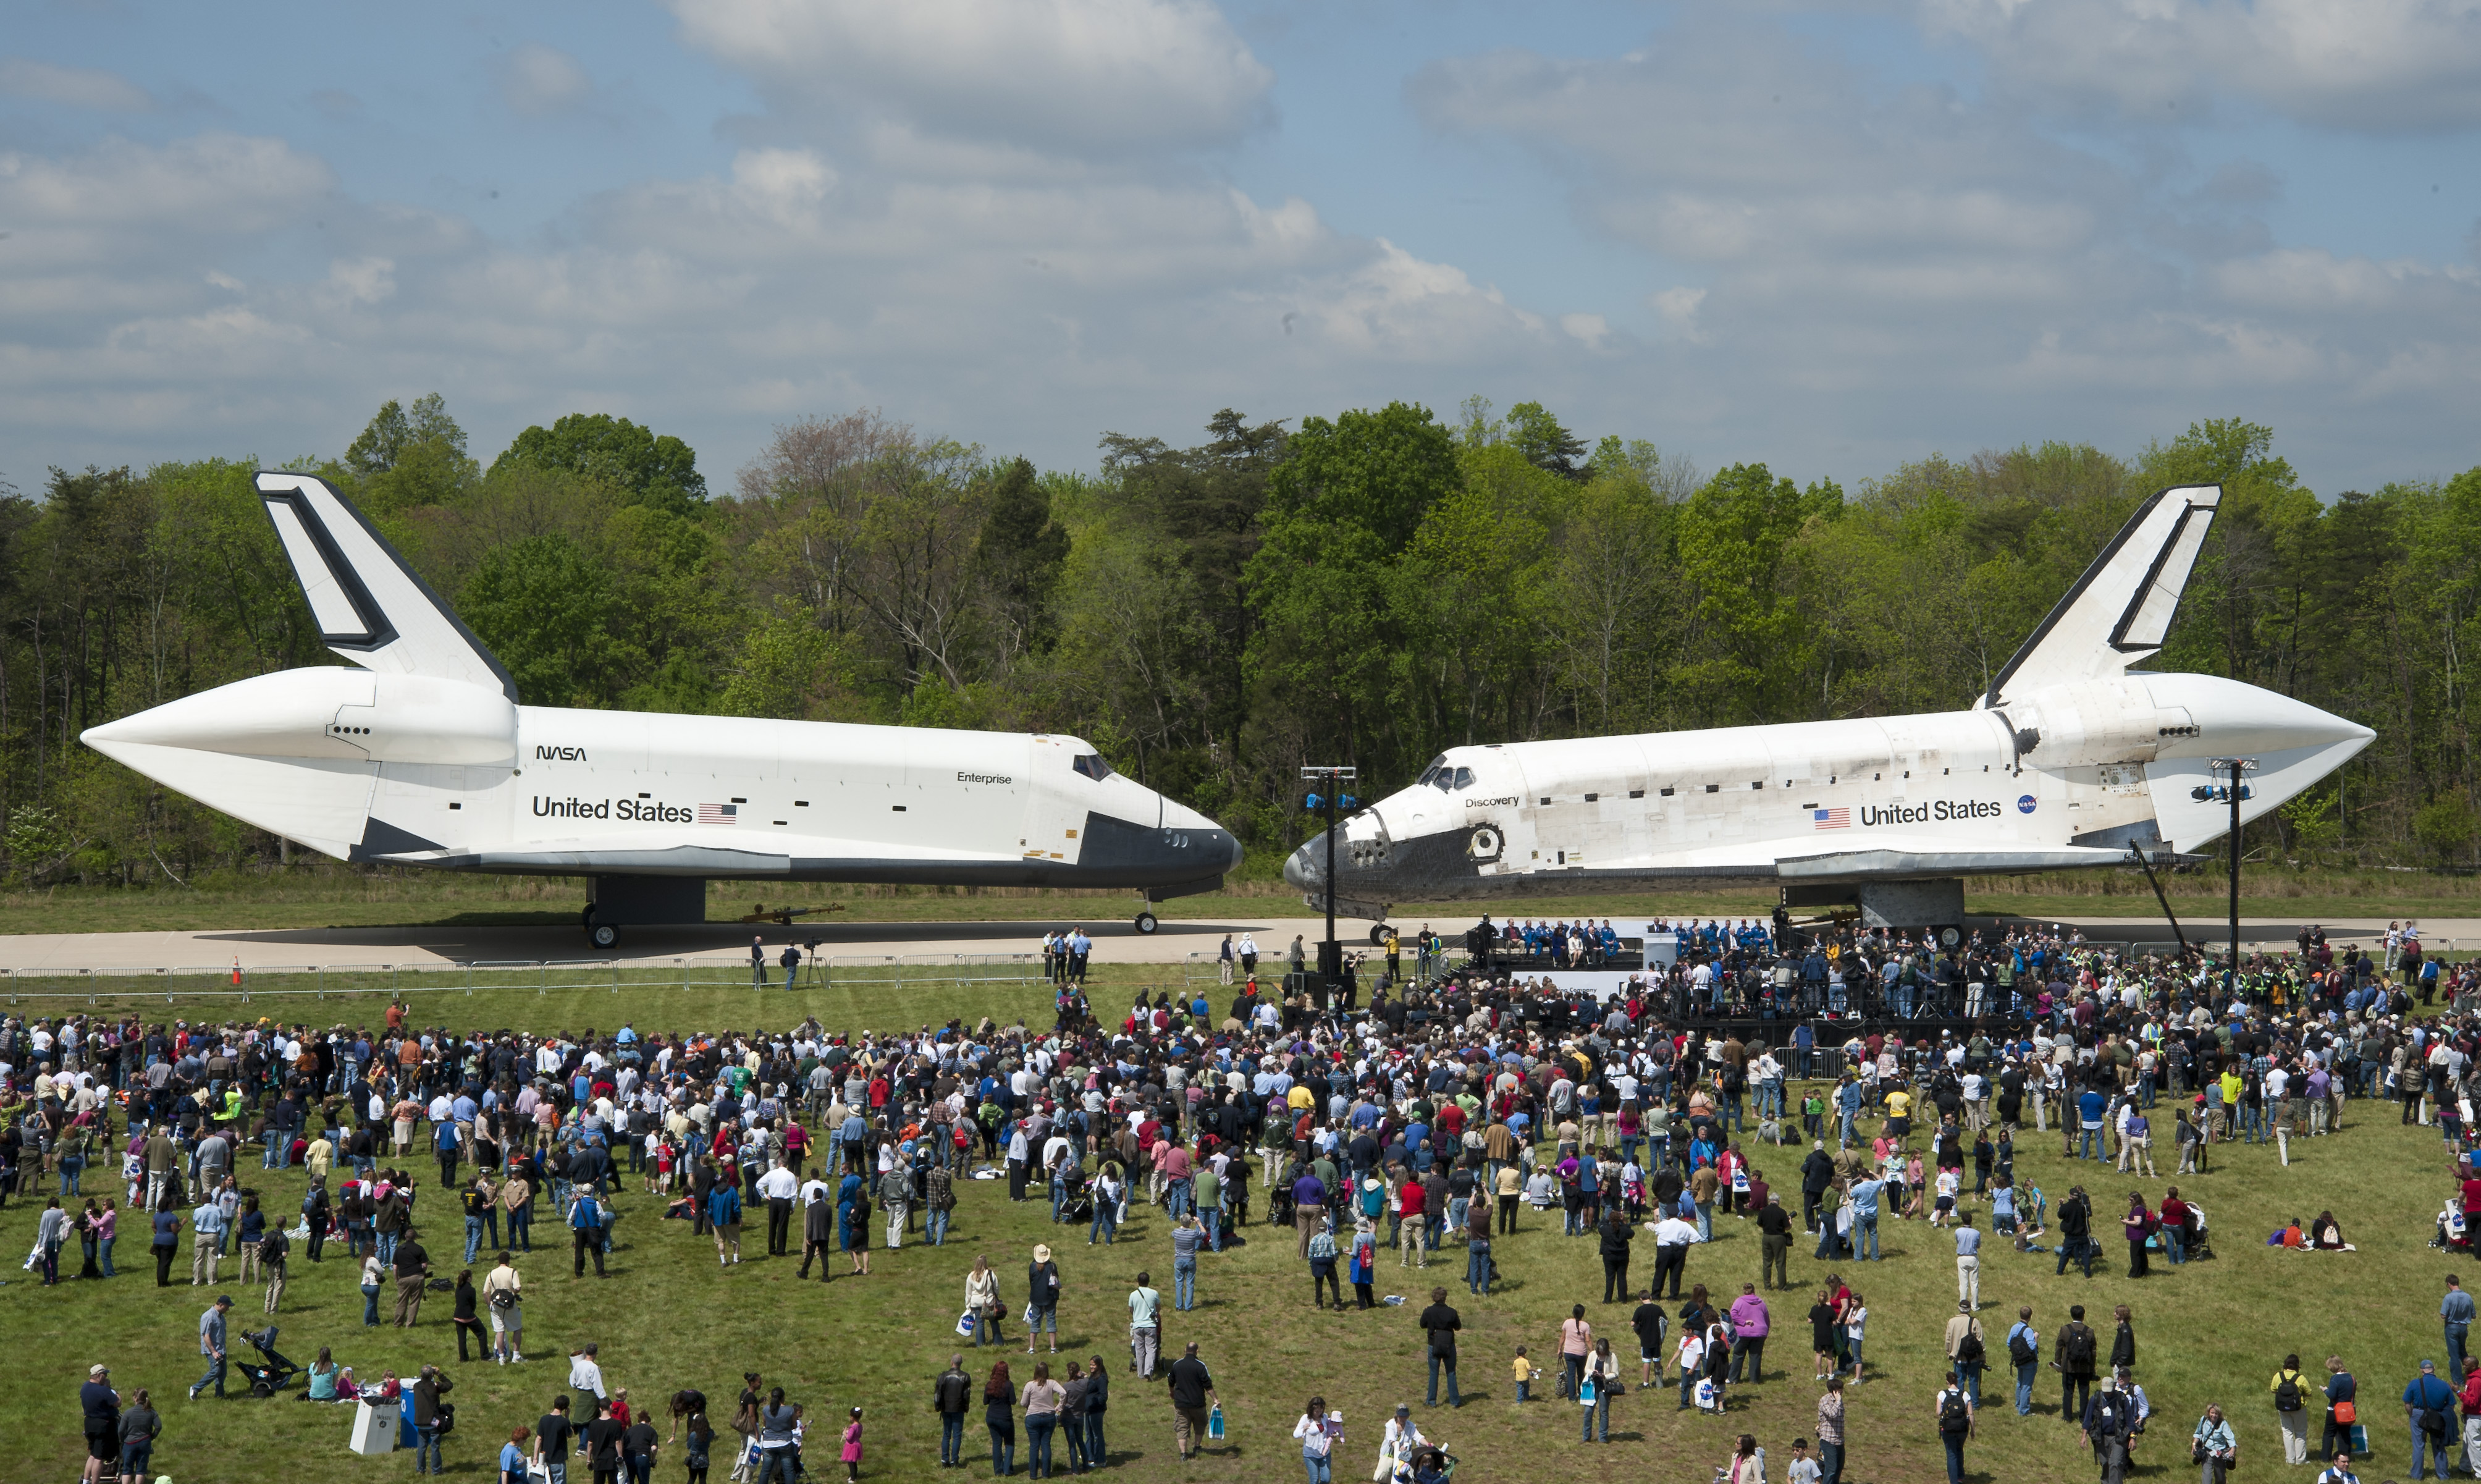 space shuttle discovery hazy - photo #33